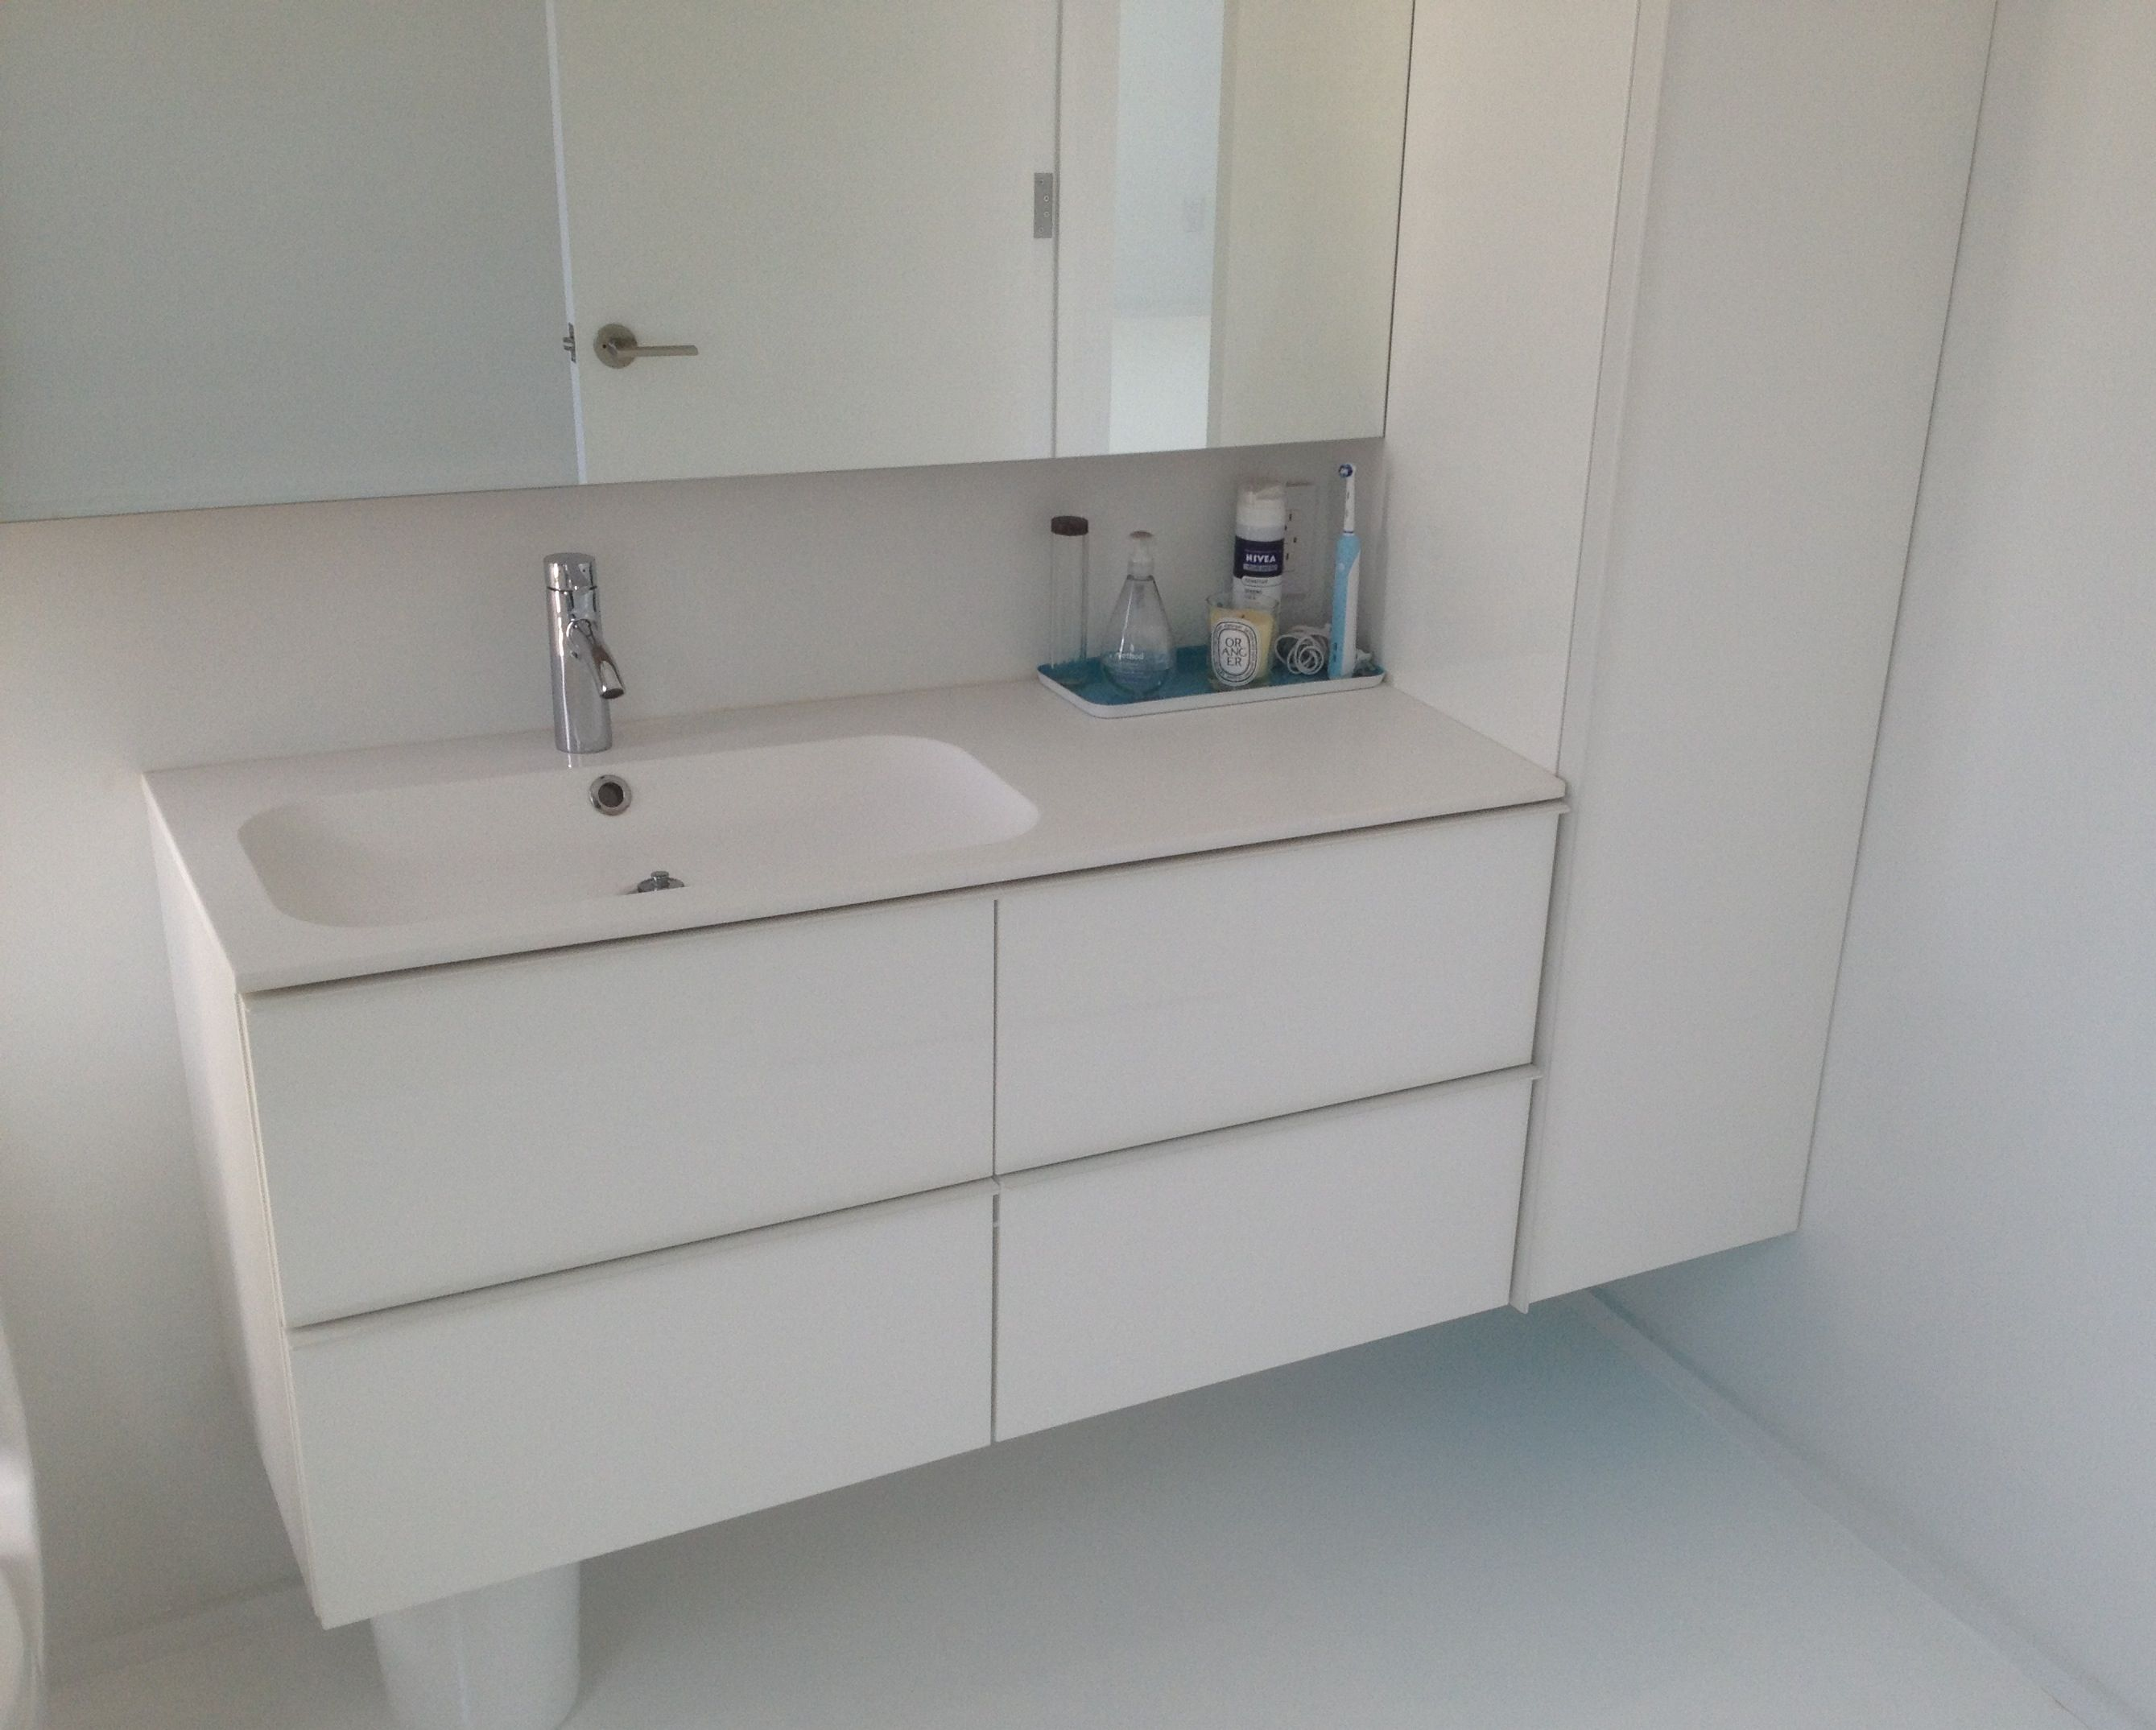 Glorious Floating White Acrylic Bathroom Vanities Ikea With Single Undermount Sink Added Cabinets Designs In Modern Ideas